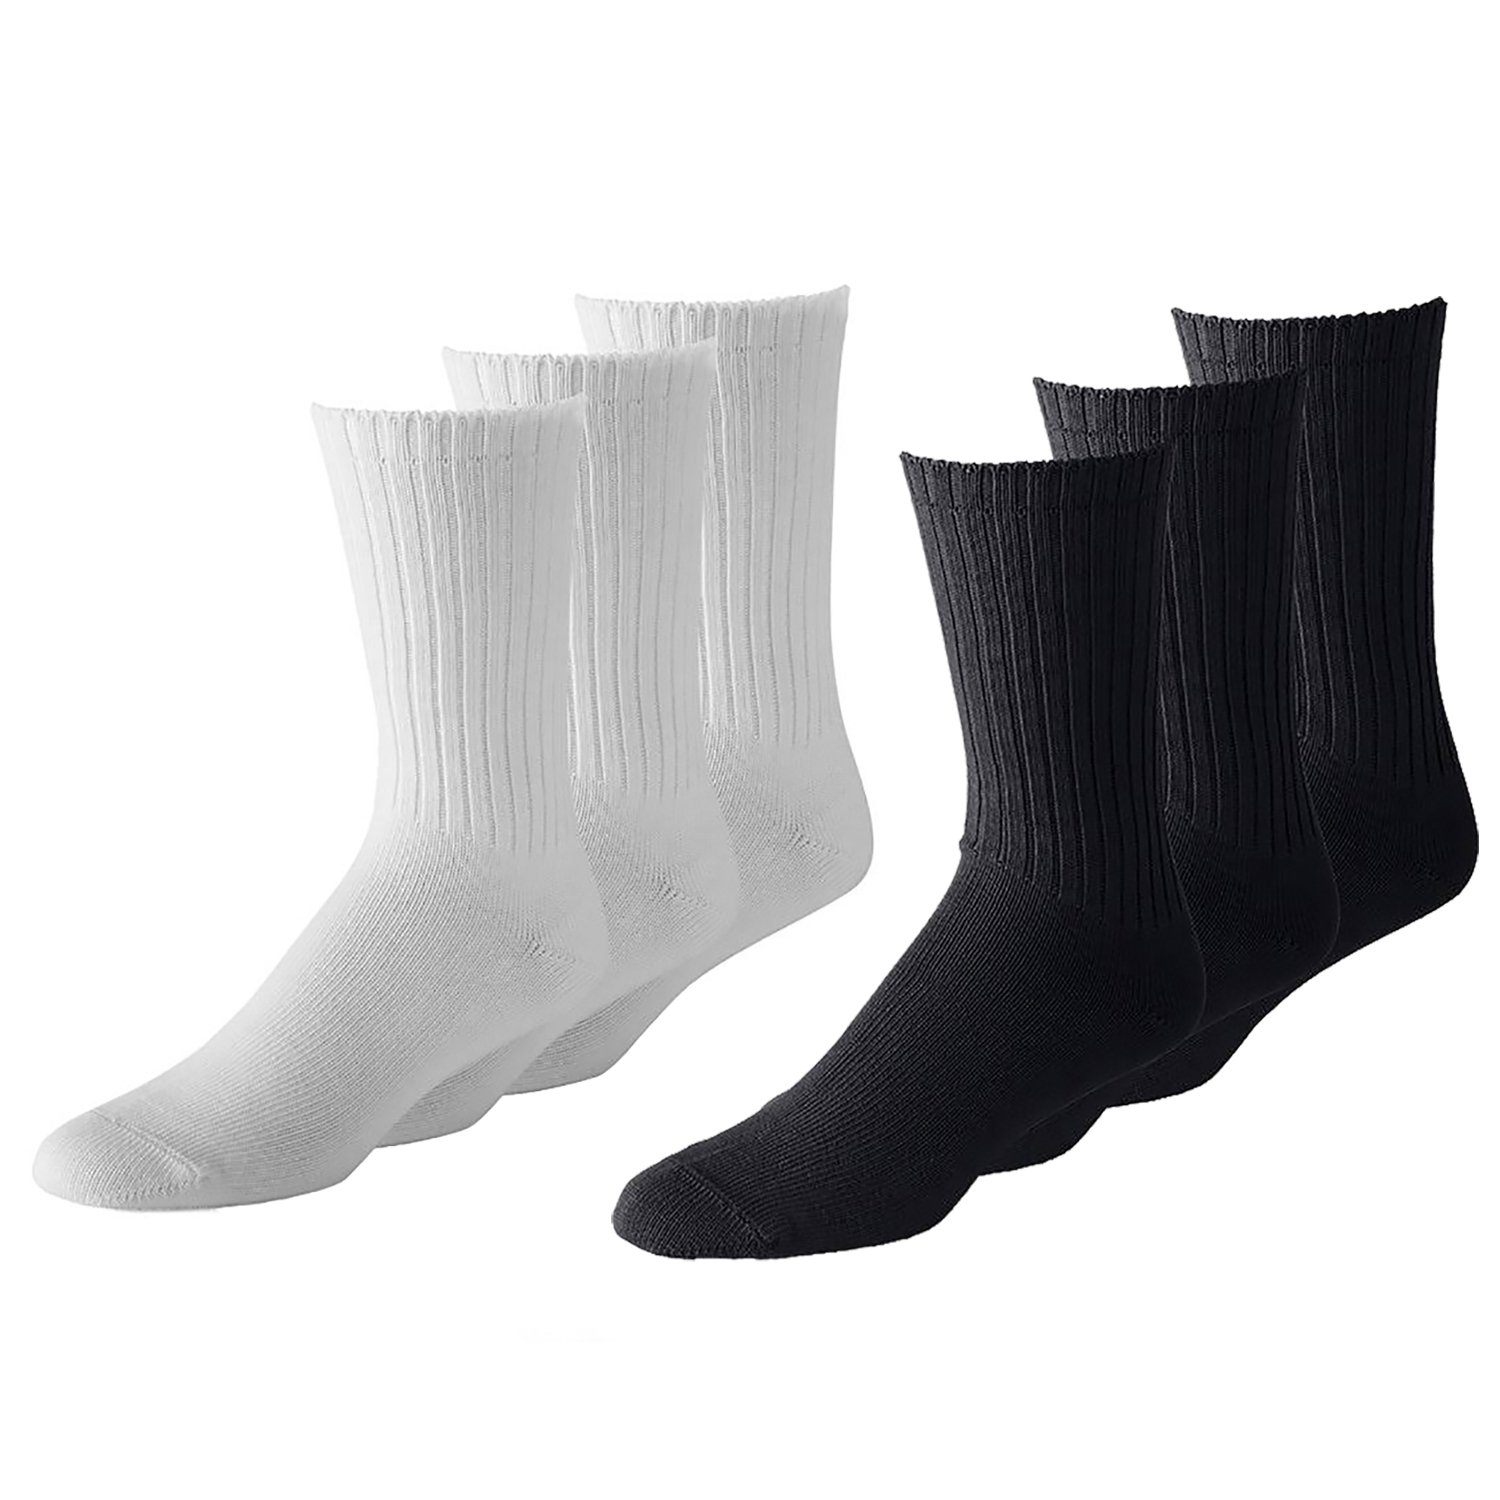 120 Pairs Men or Women Classic and Athletic Crew Socks - Bulk Wholesale Packs - Any Shoe Size (9-11, Mix)